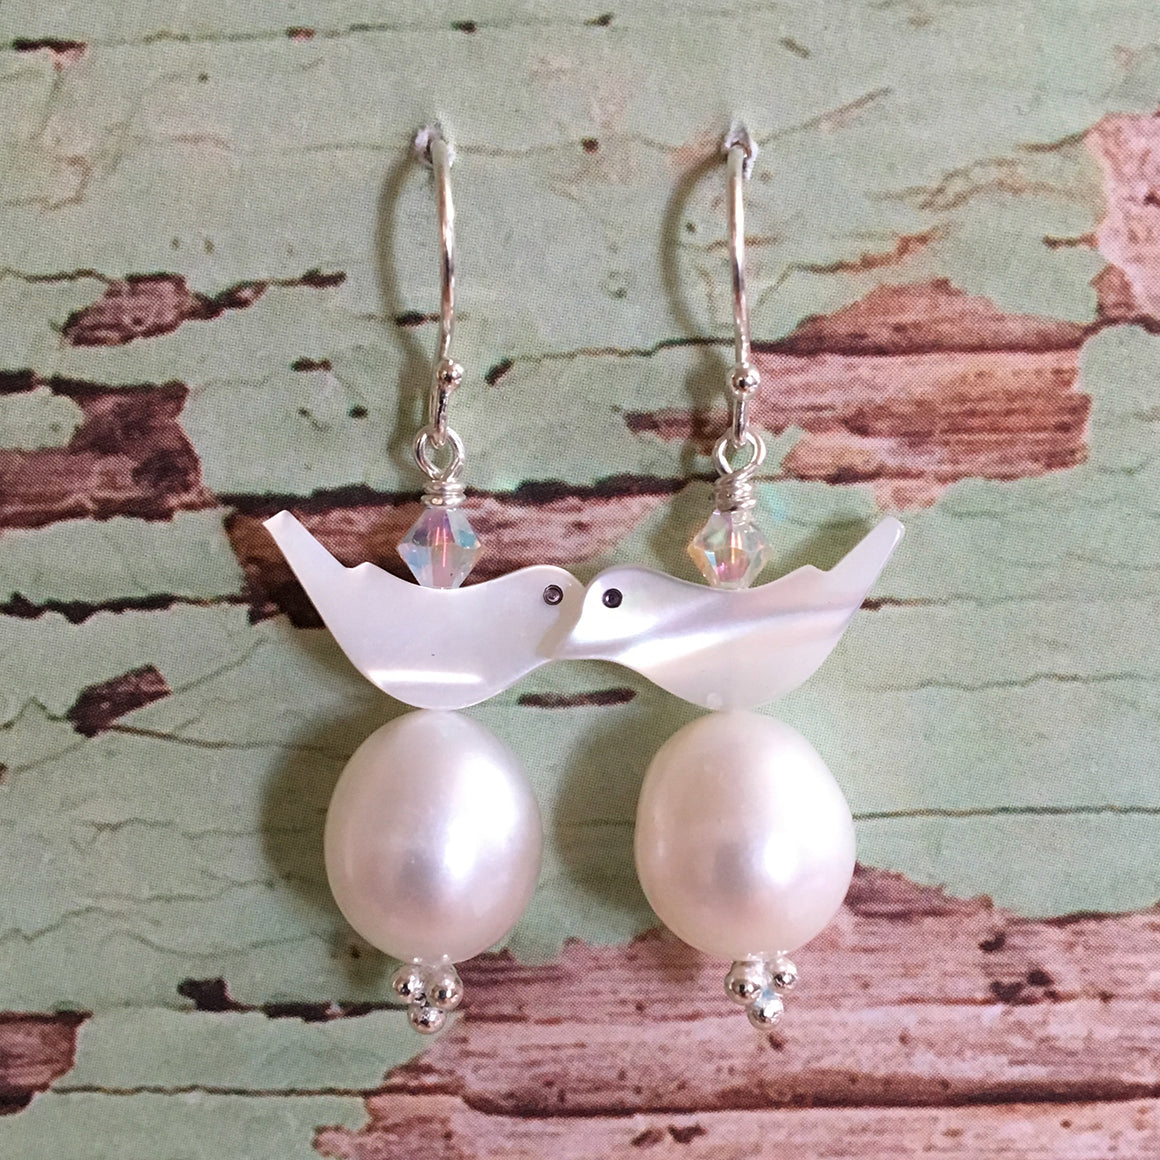 Bird and Egg Earrings